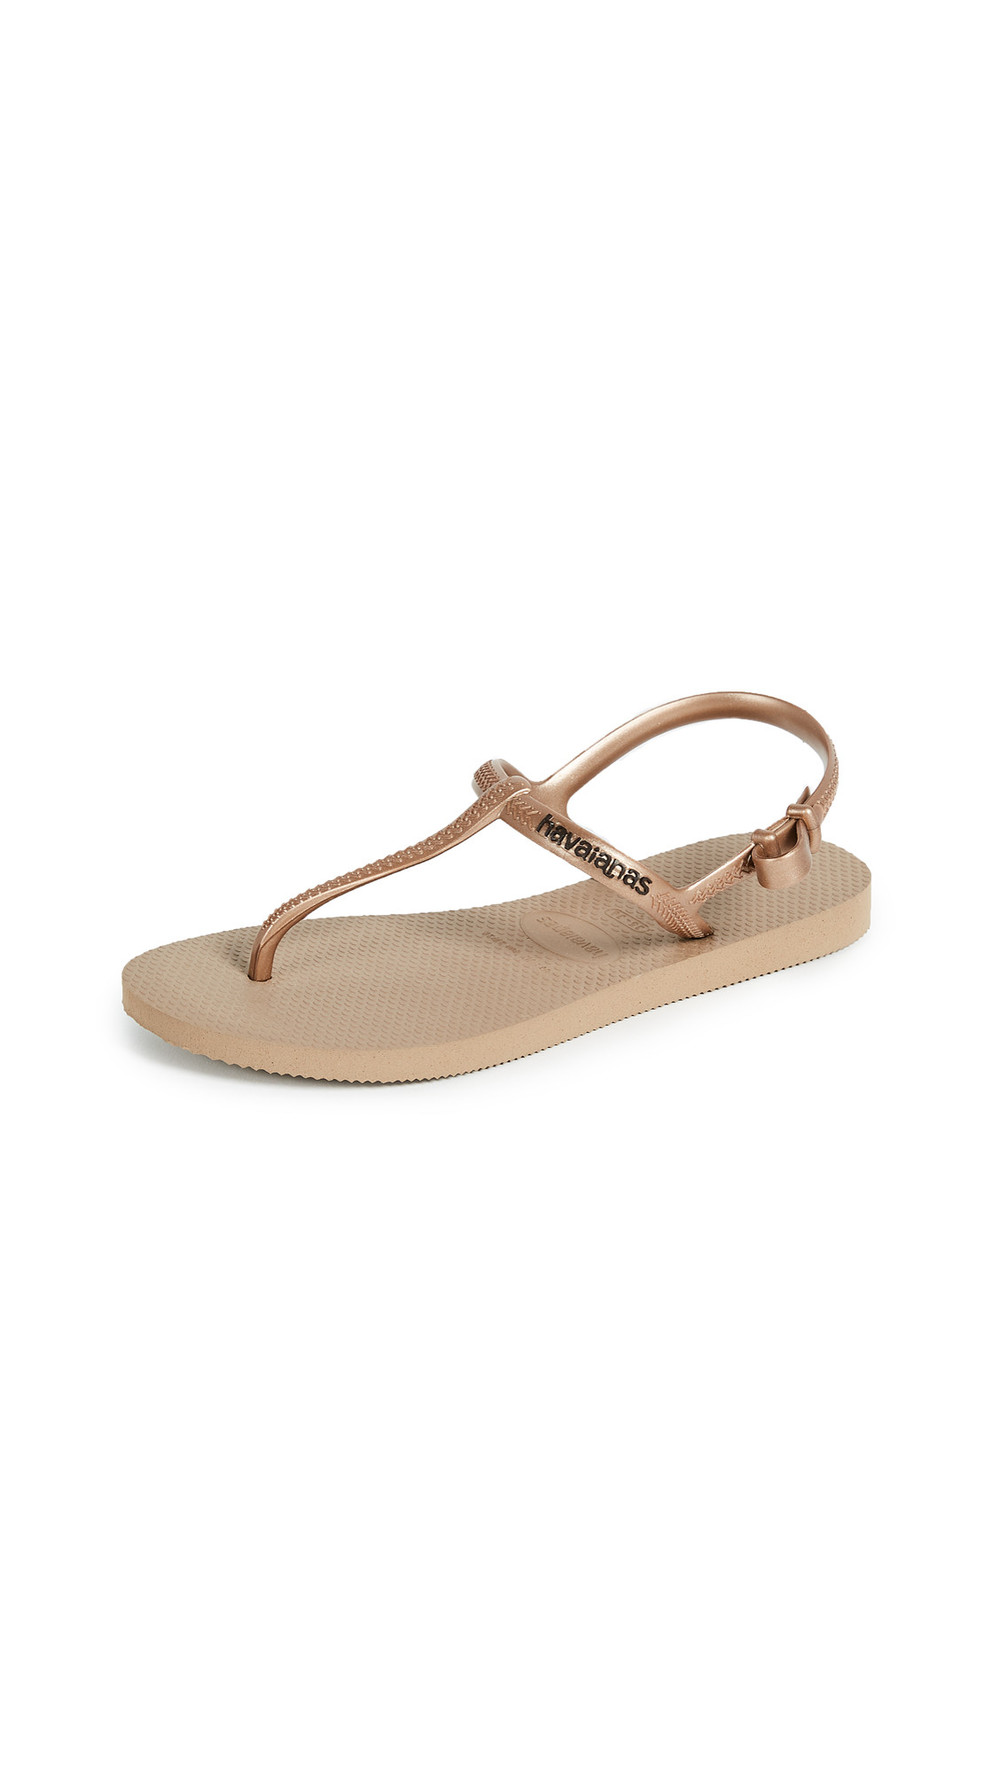 Havaianas Freedom T Strap Sandals in gold / rose